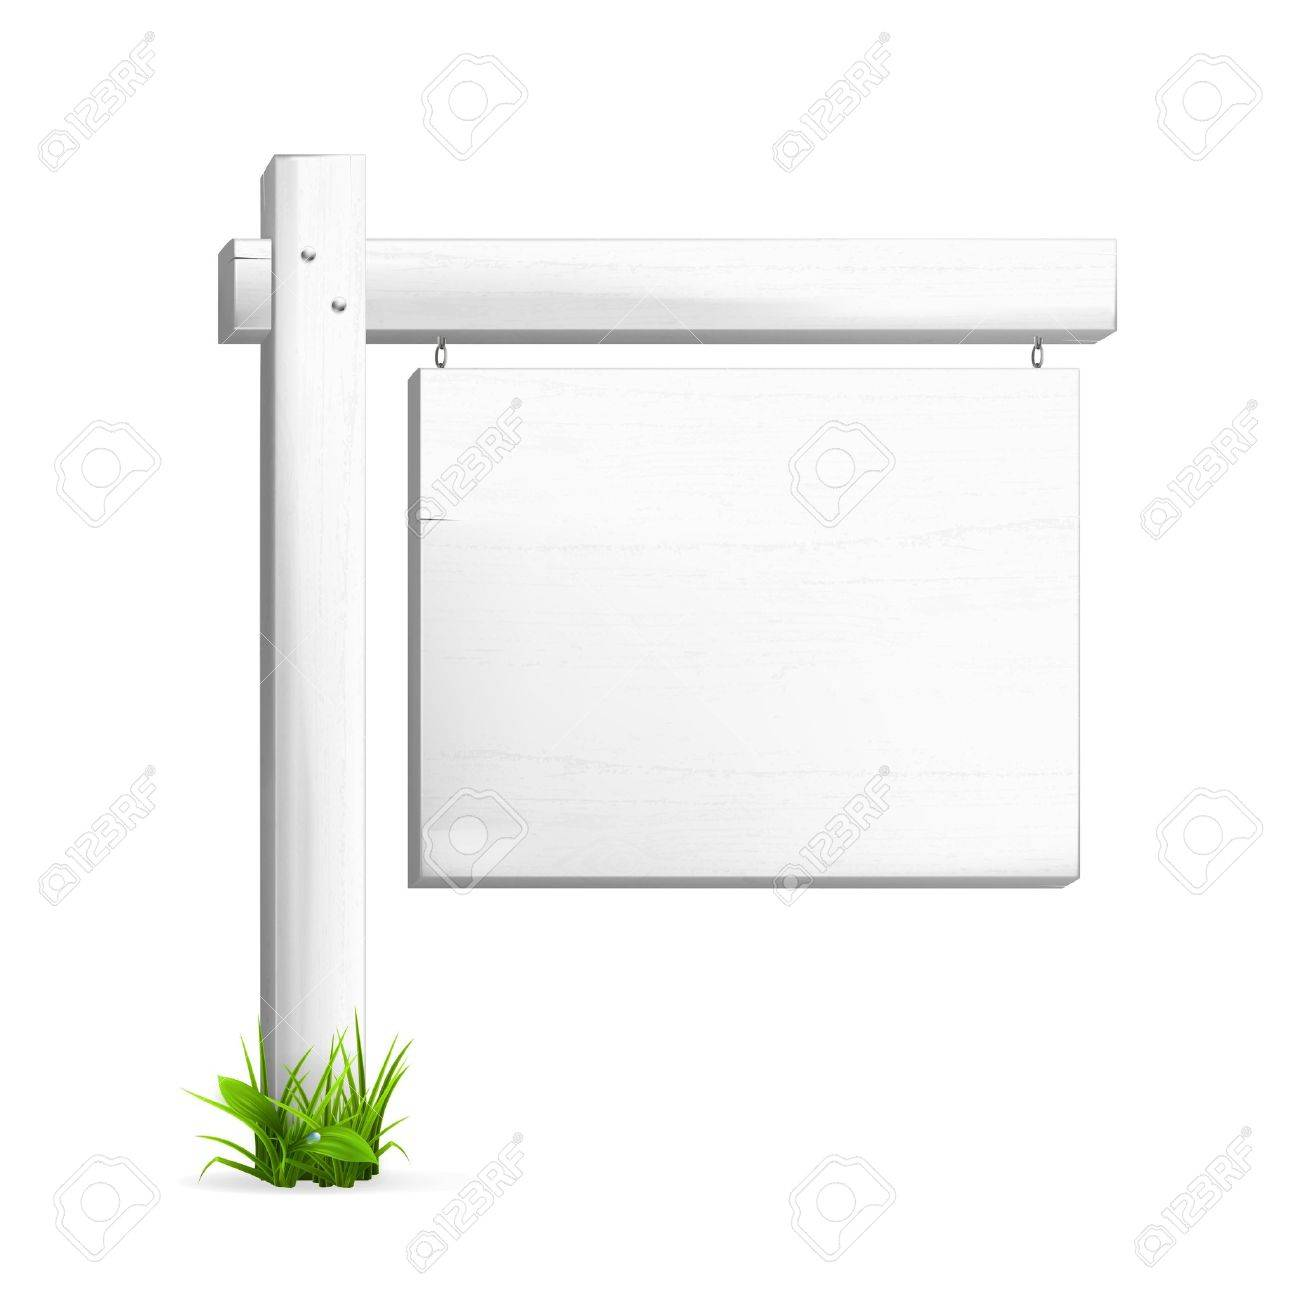 For sale sign Stock Vector - 13899347